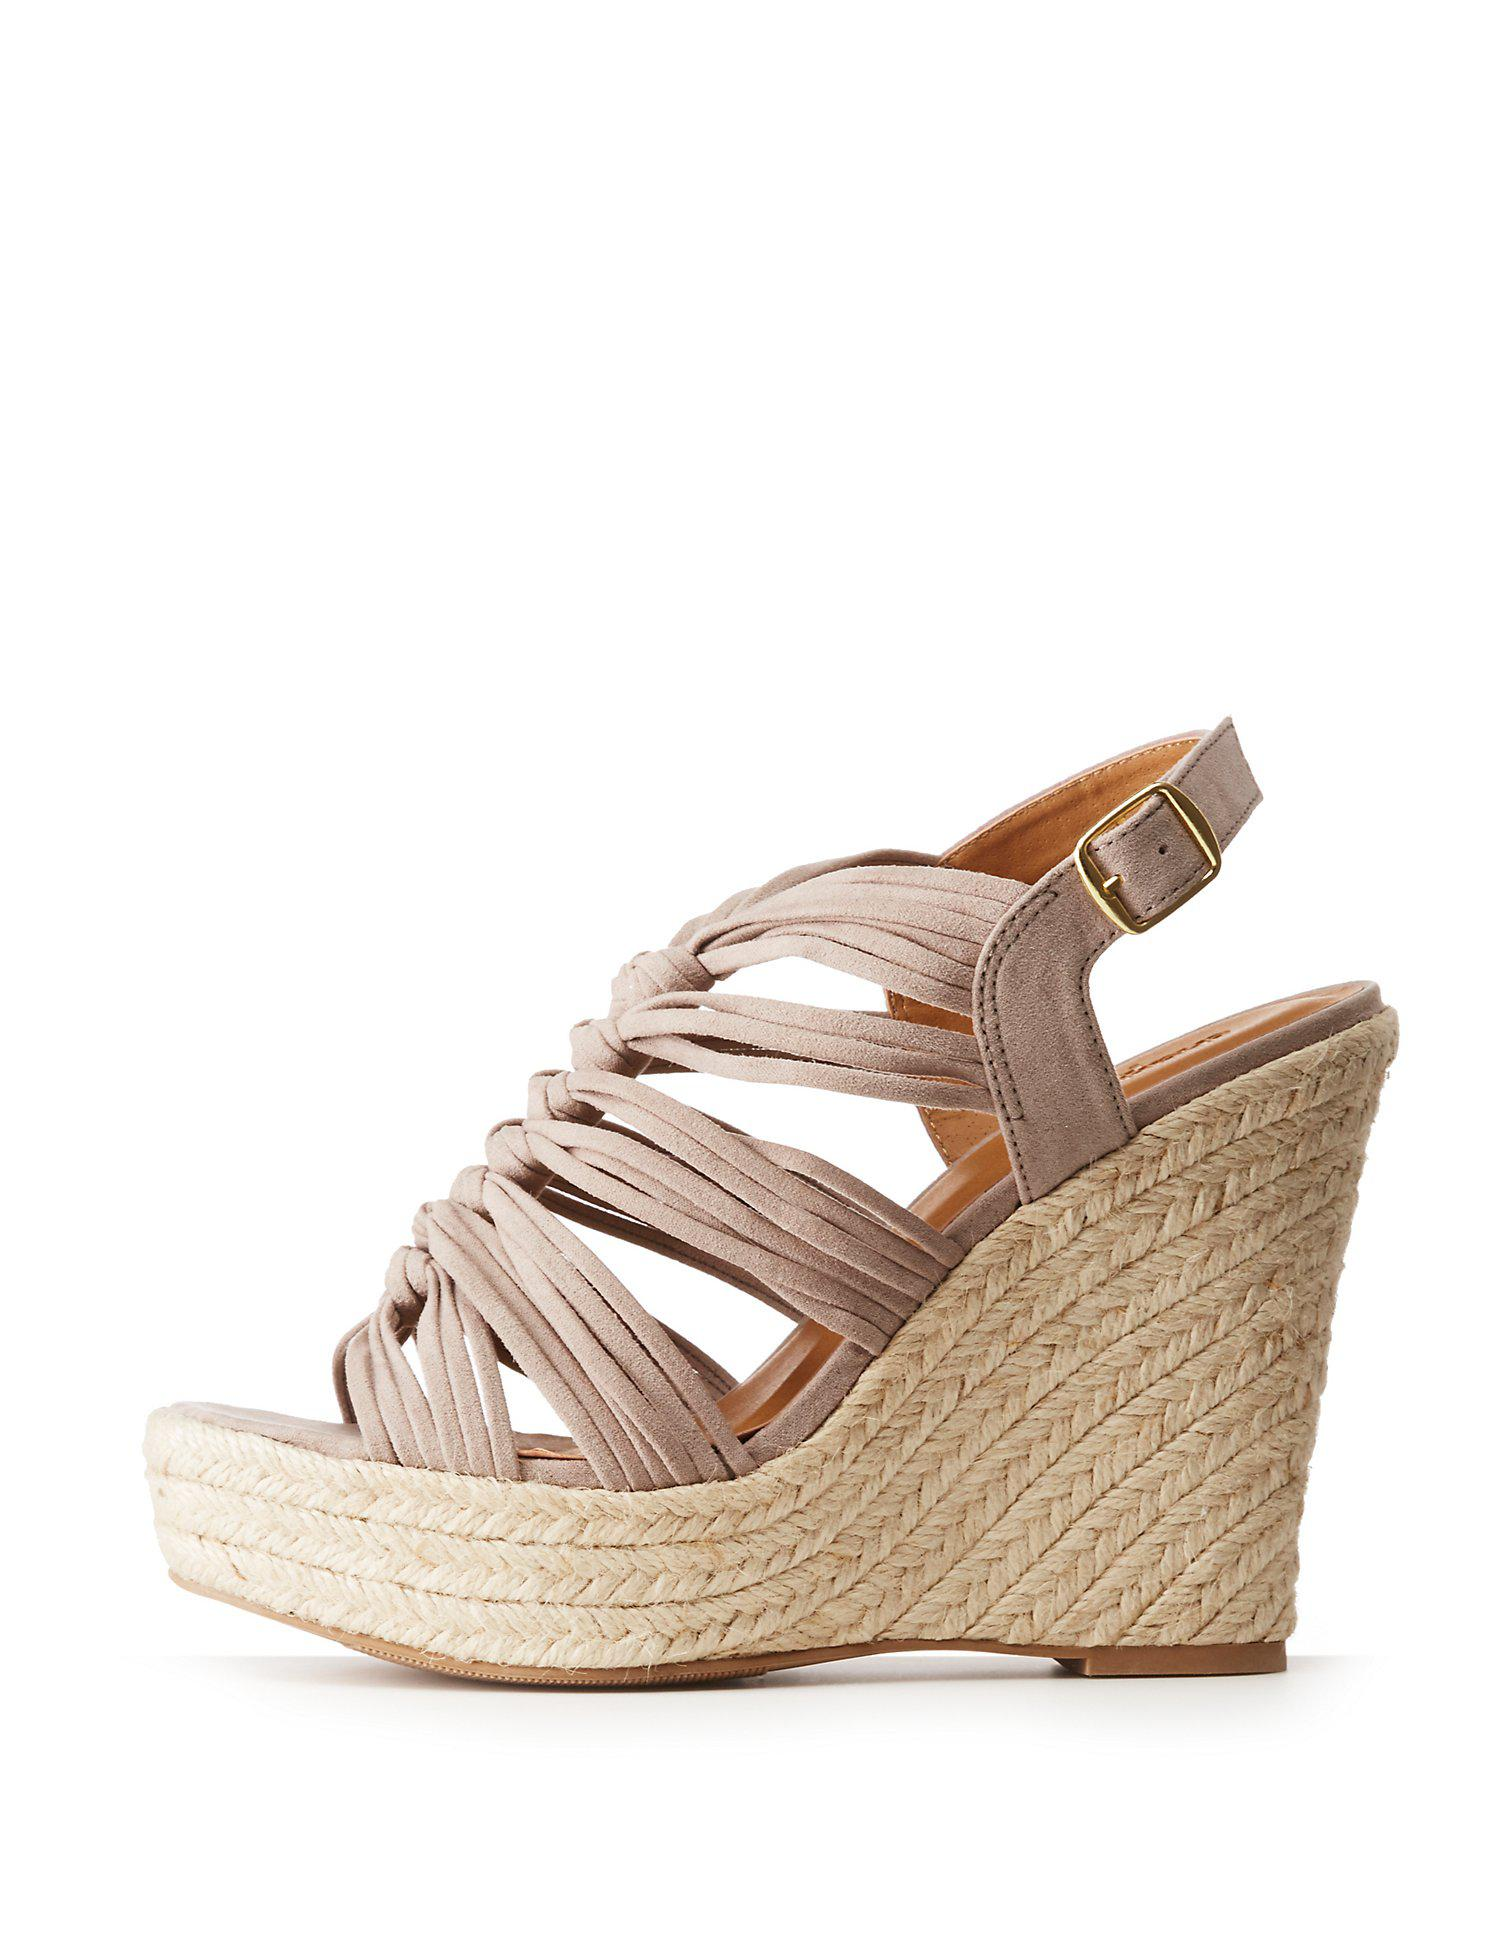 3b71690d0d3 Charlotte Russe. Women s Brown Faux Suede Espadrille Wedge Strappy Sandals